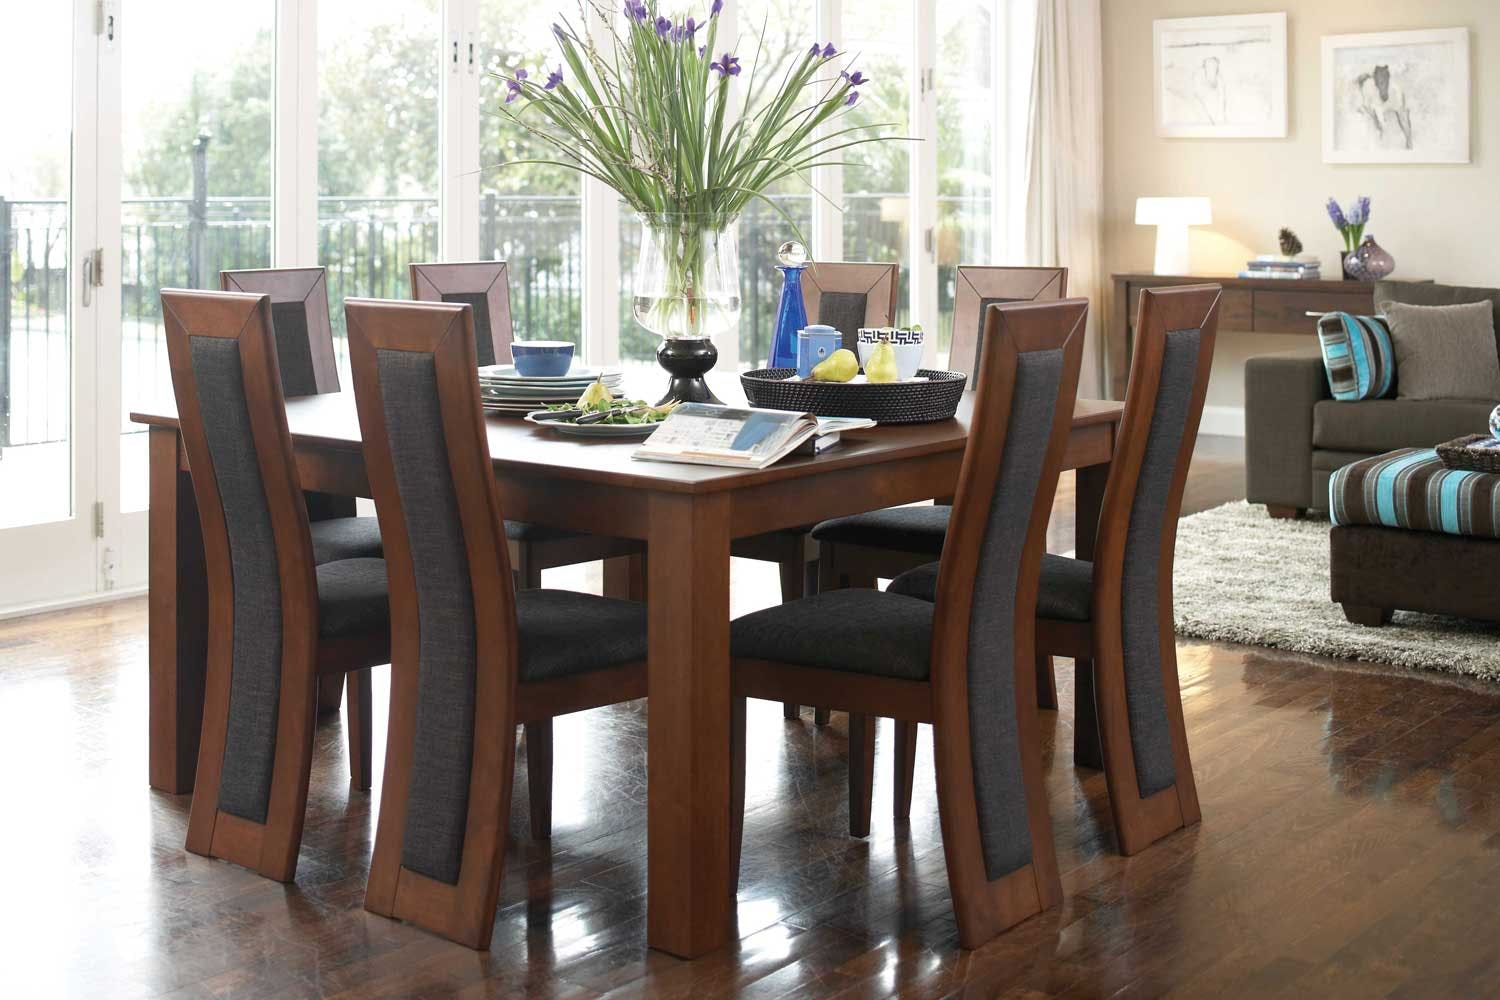 Monte Cristo 9 Piece Dining Suite By John Young Furniture